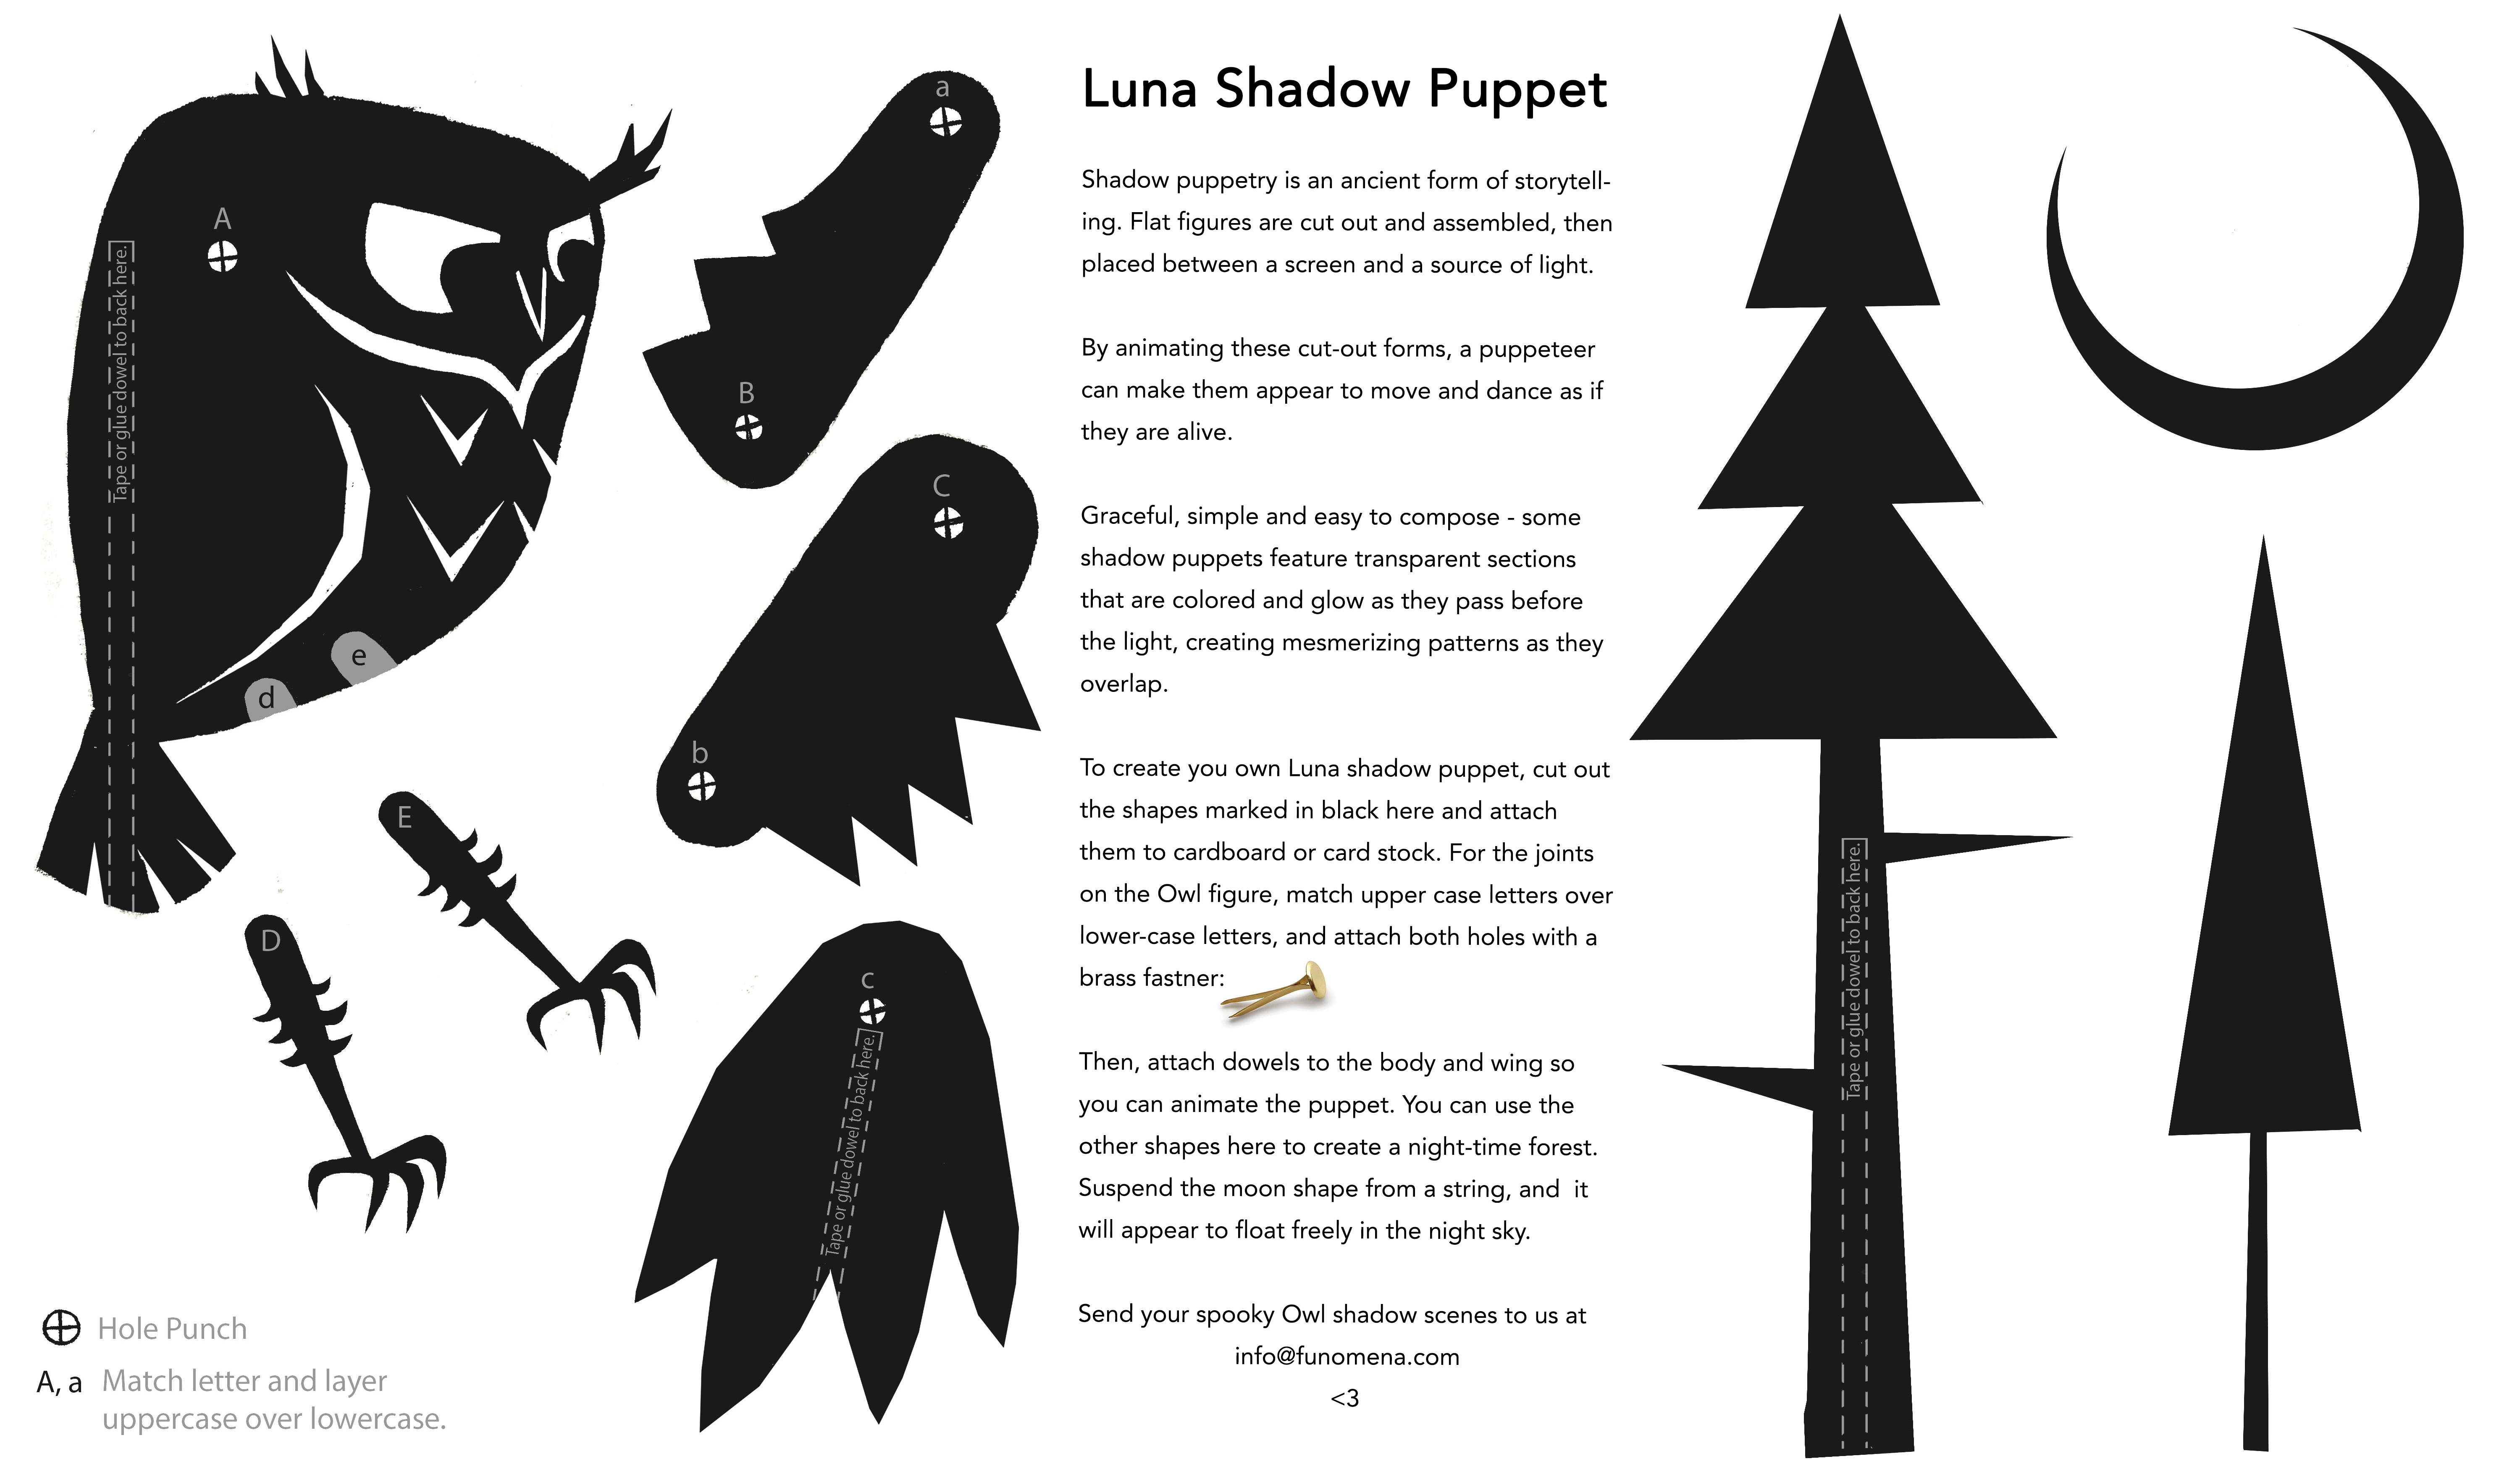 Communication on this topic: How to Make Shadow Puppets, how-to-make-shadow-puppets/